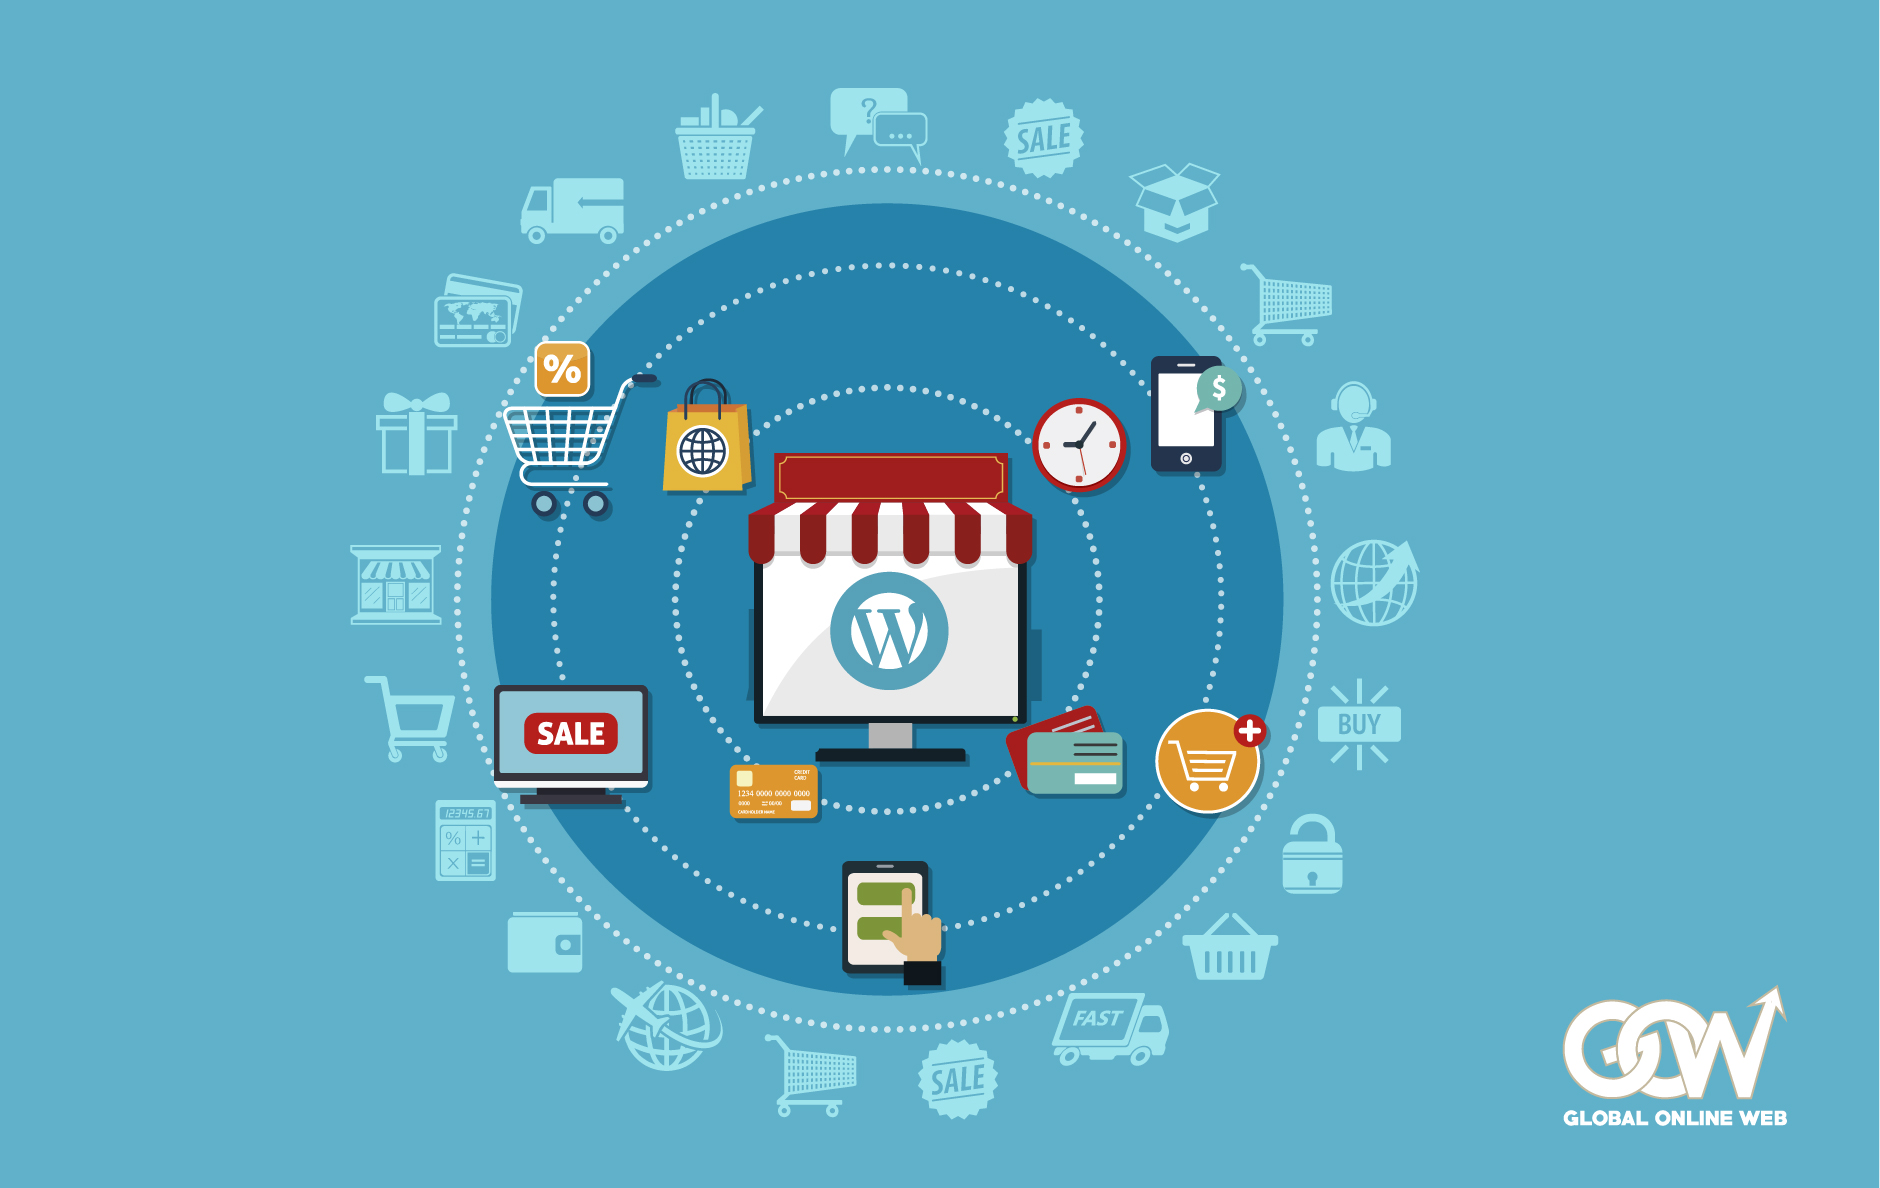 12 ventajas de usar Wordpress para vender productos o servicios digitales